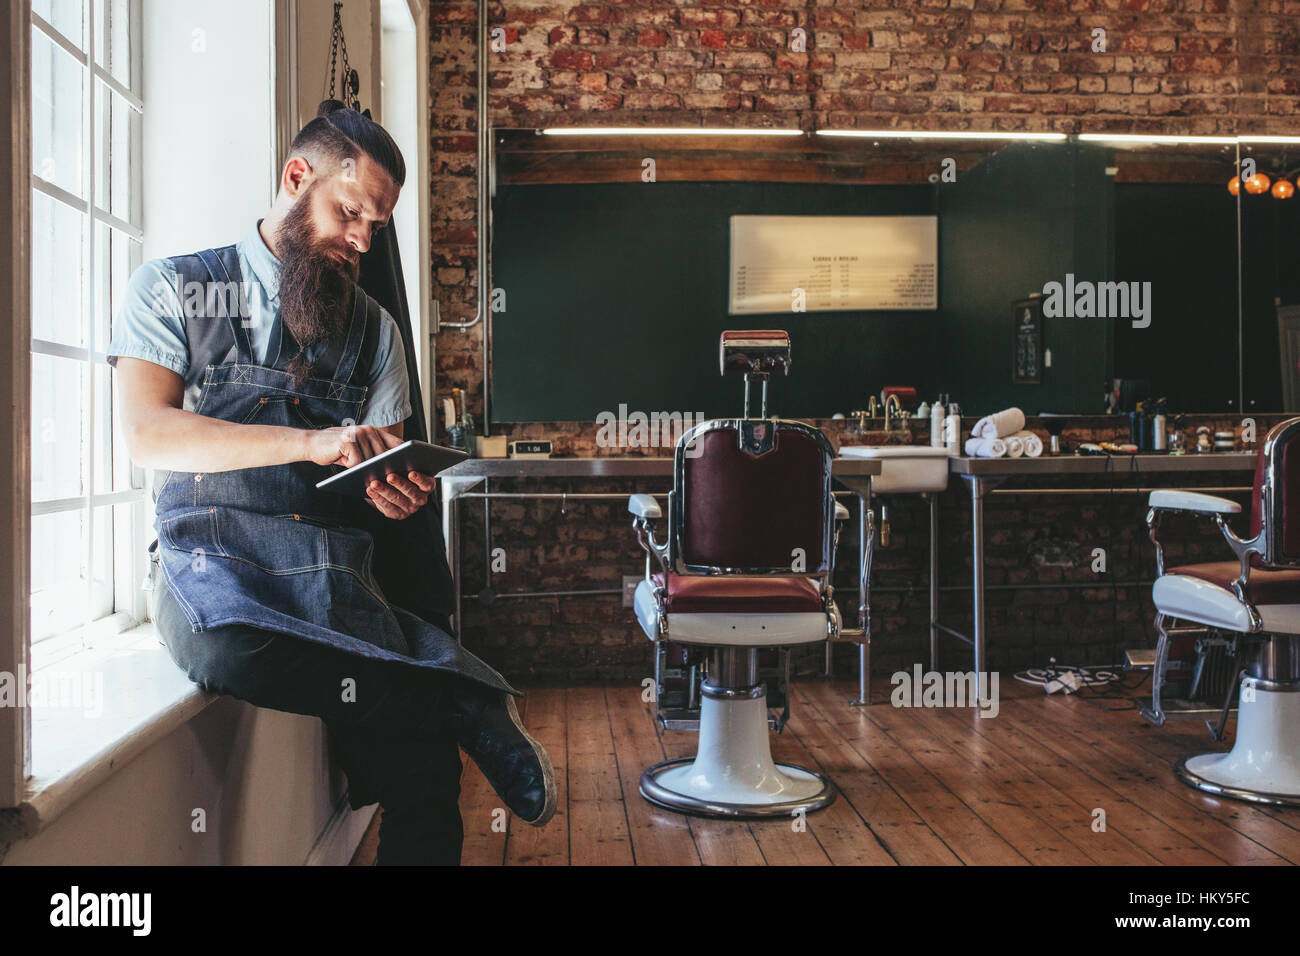 Barber with digital tablet sitting on window sill of salon. Hairdresser organizing his business using latest technology. - Stock Image